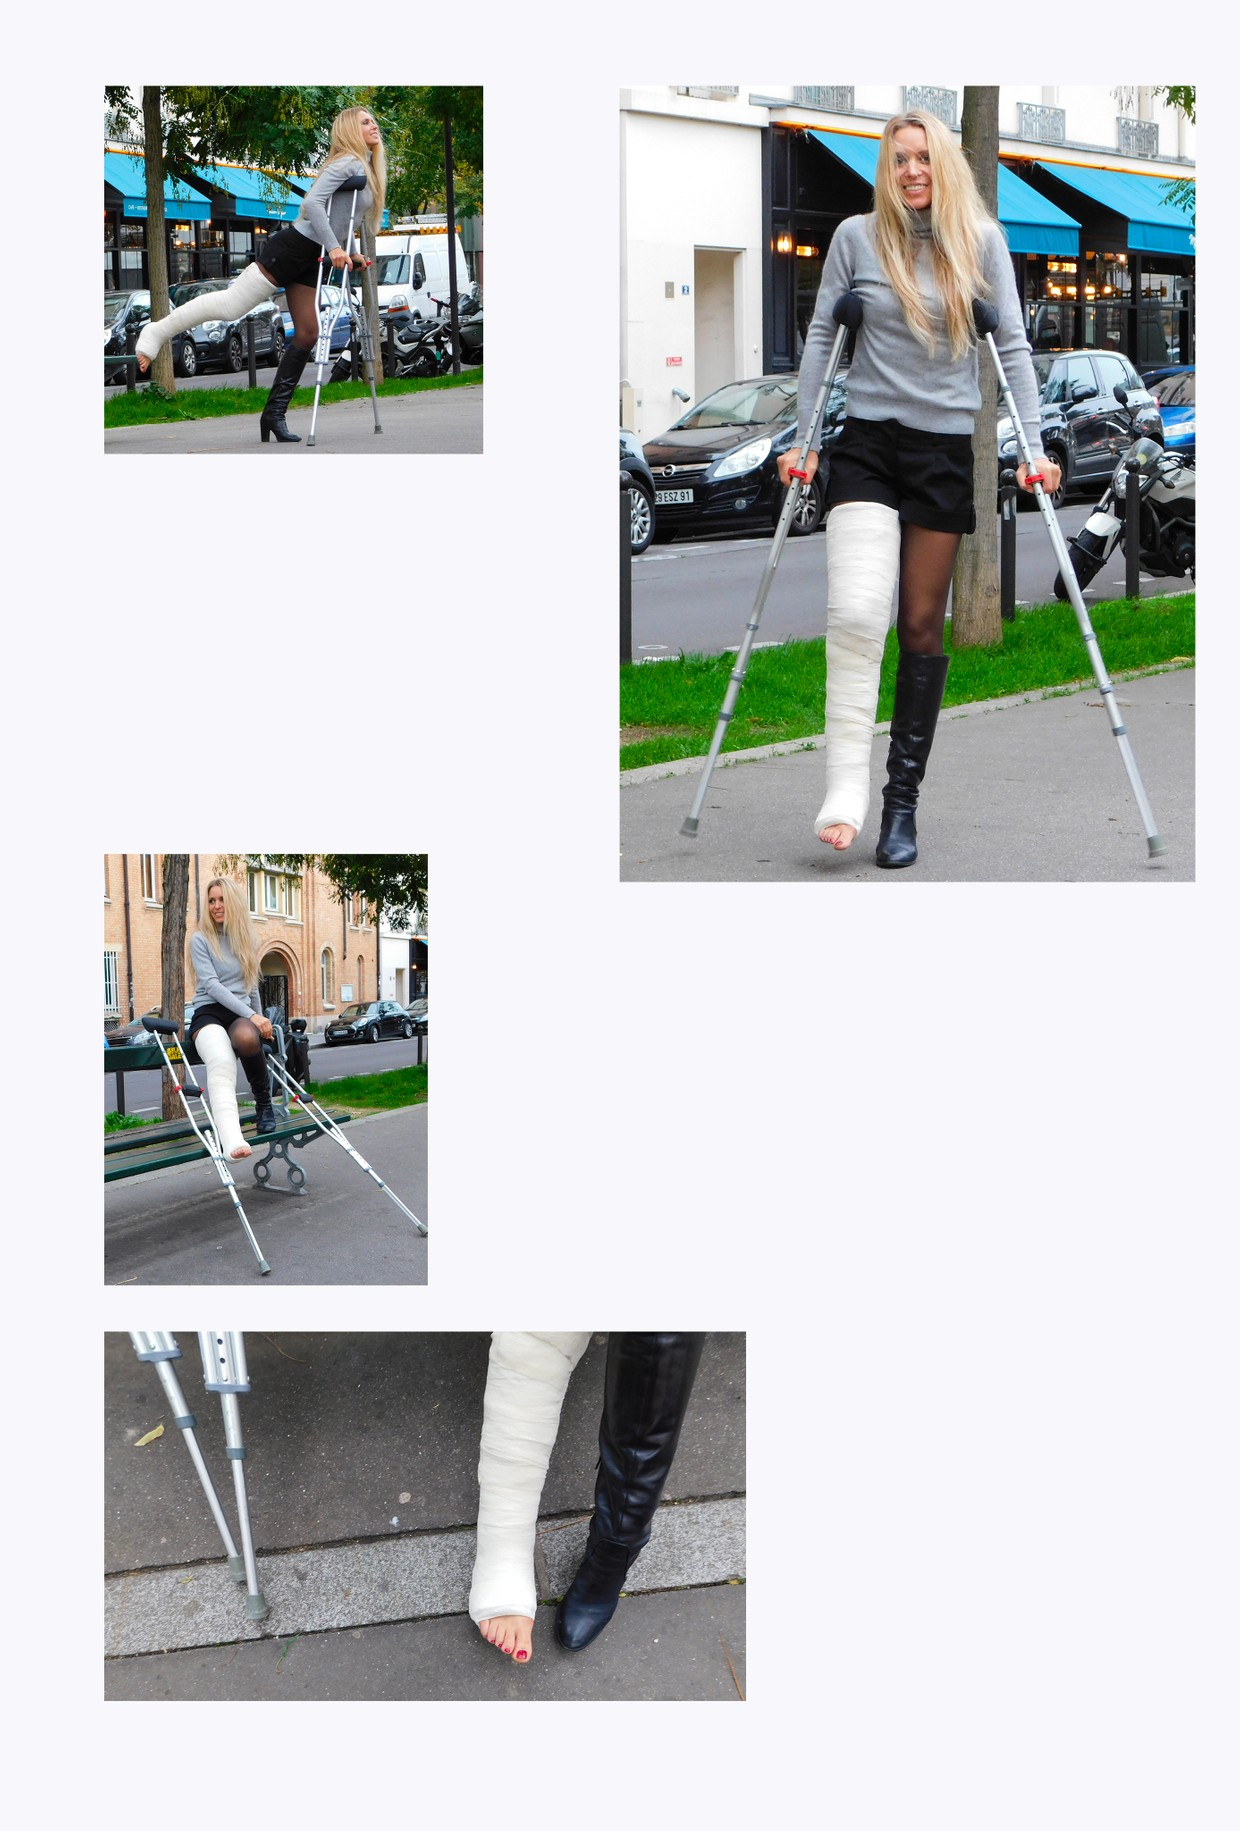 Linda with LLC and crutches